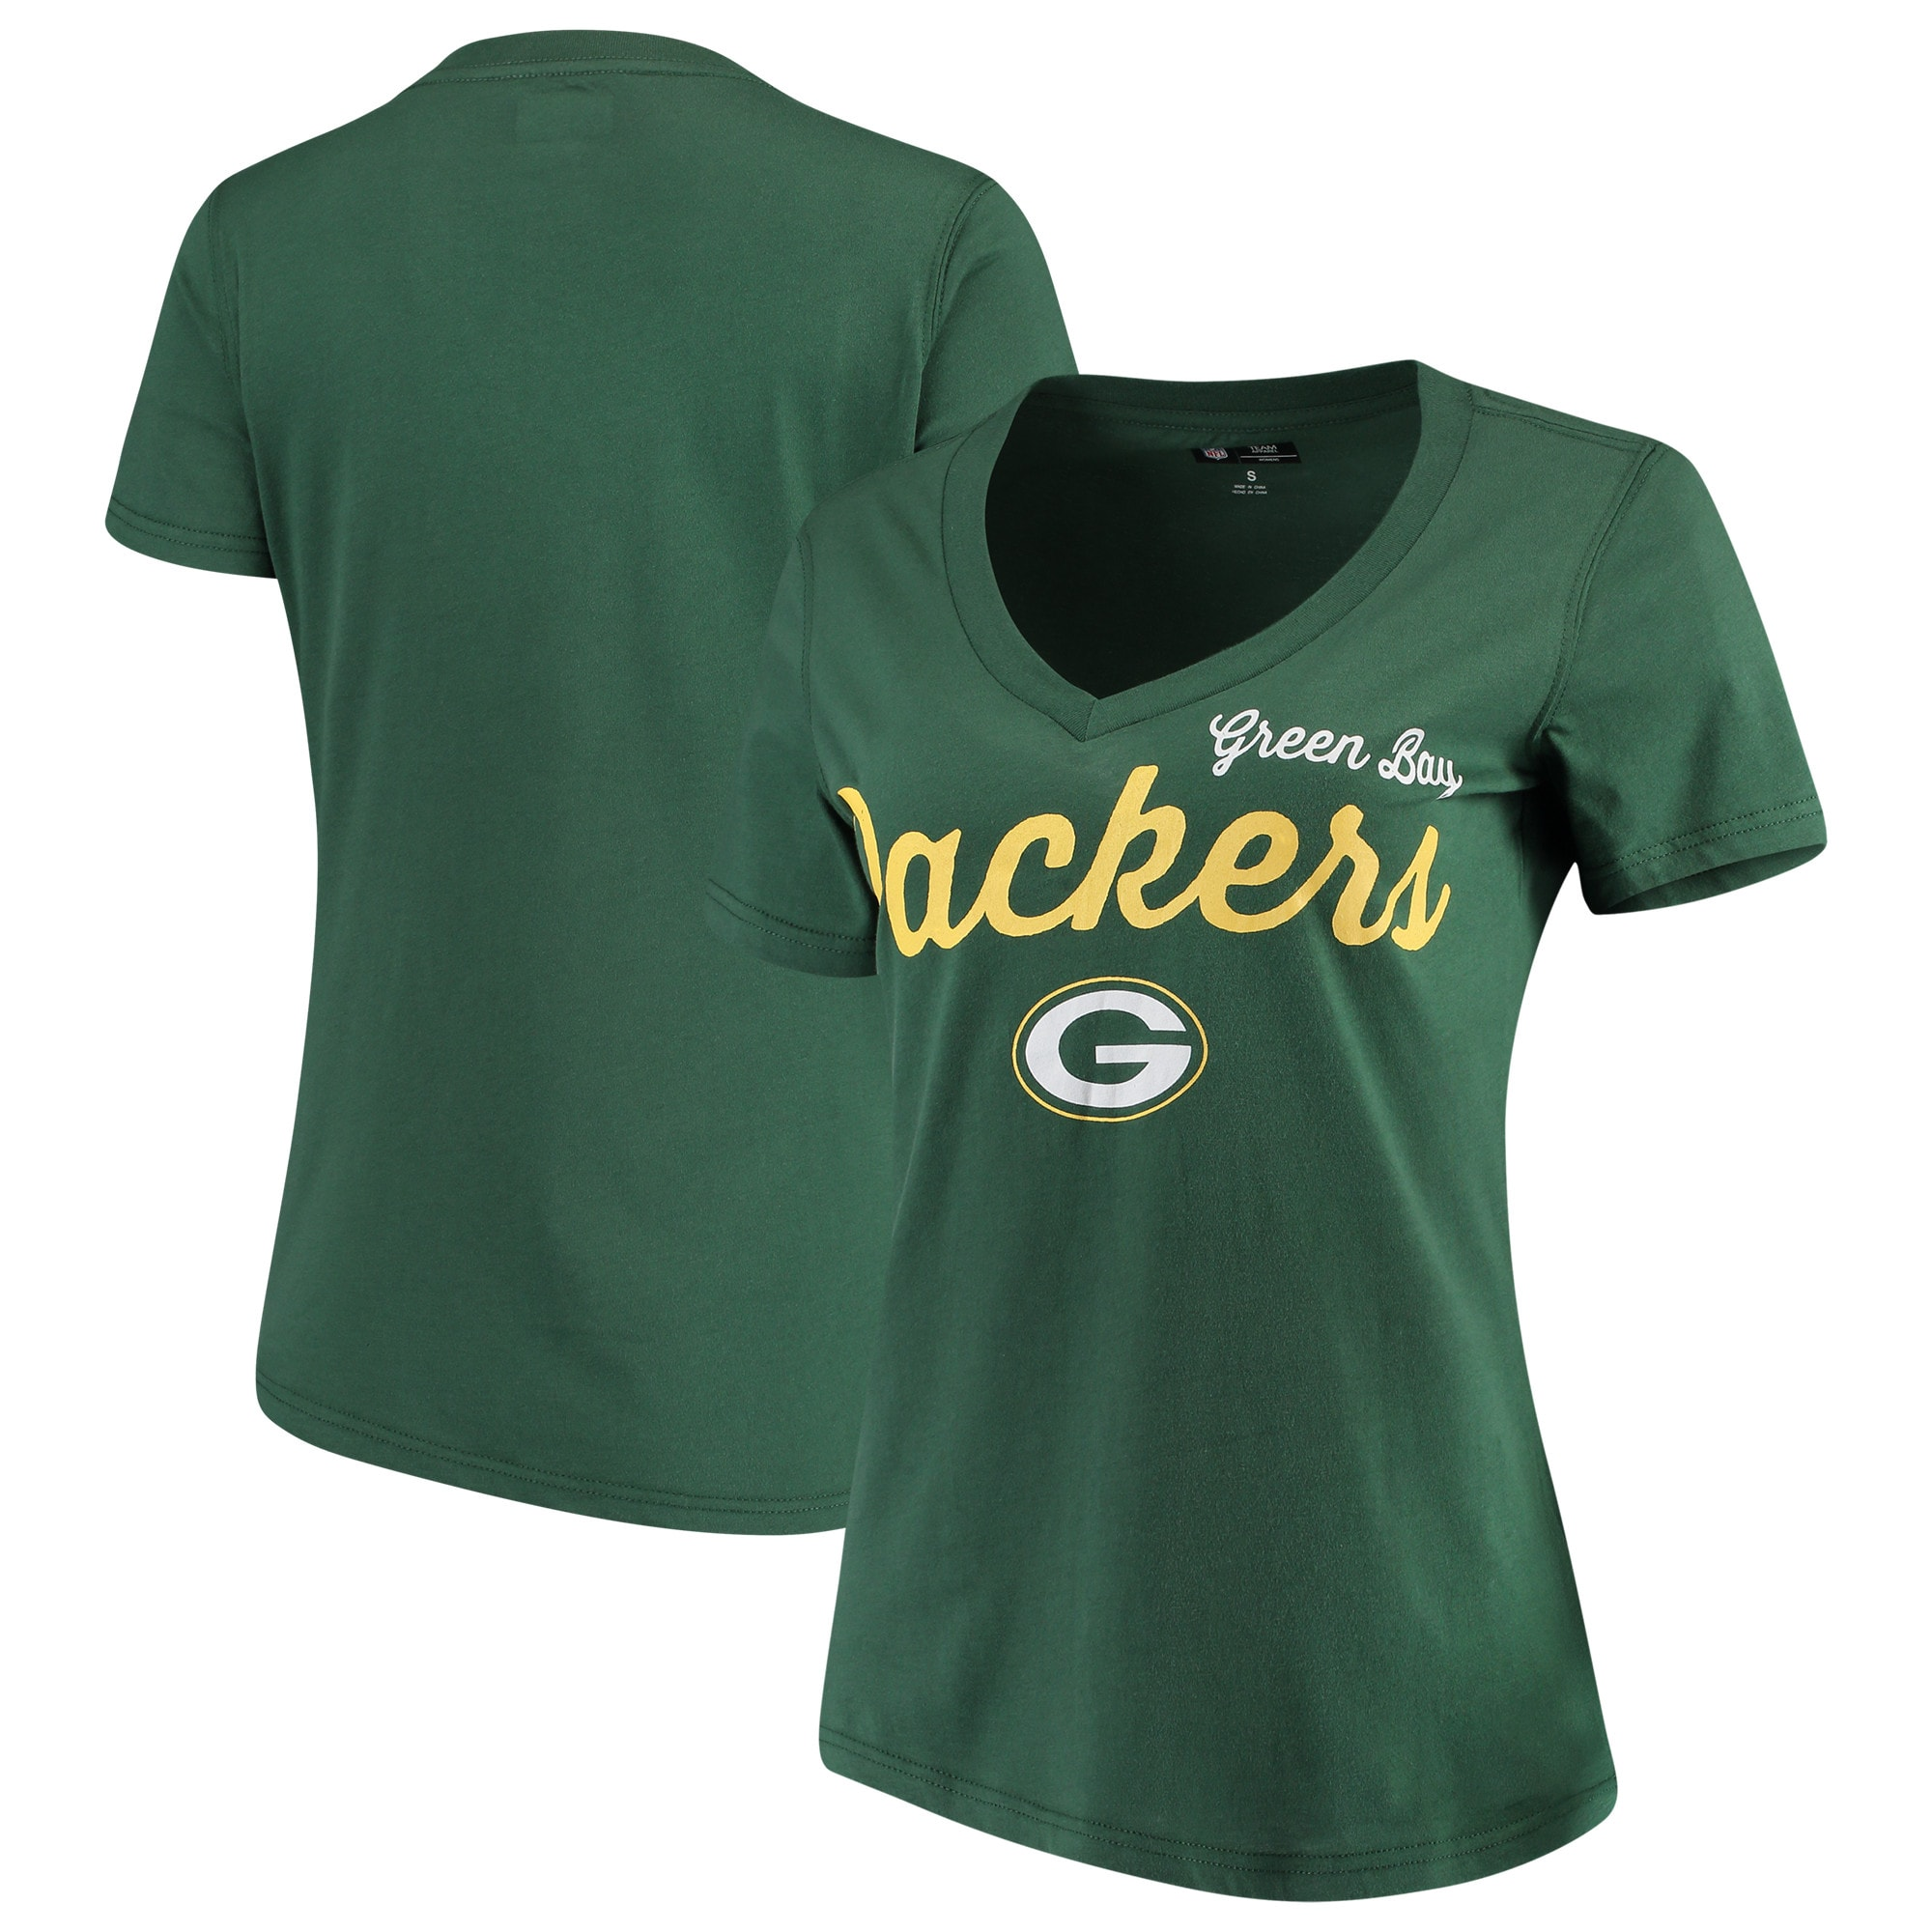 Green Bay Packers G-III 4Her by Carl Banks Women's Post Season V-Neck T-Shirt - Green